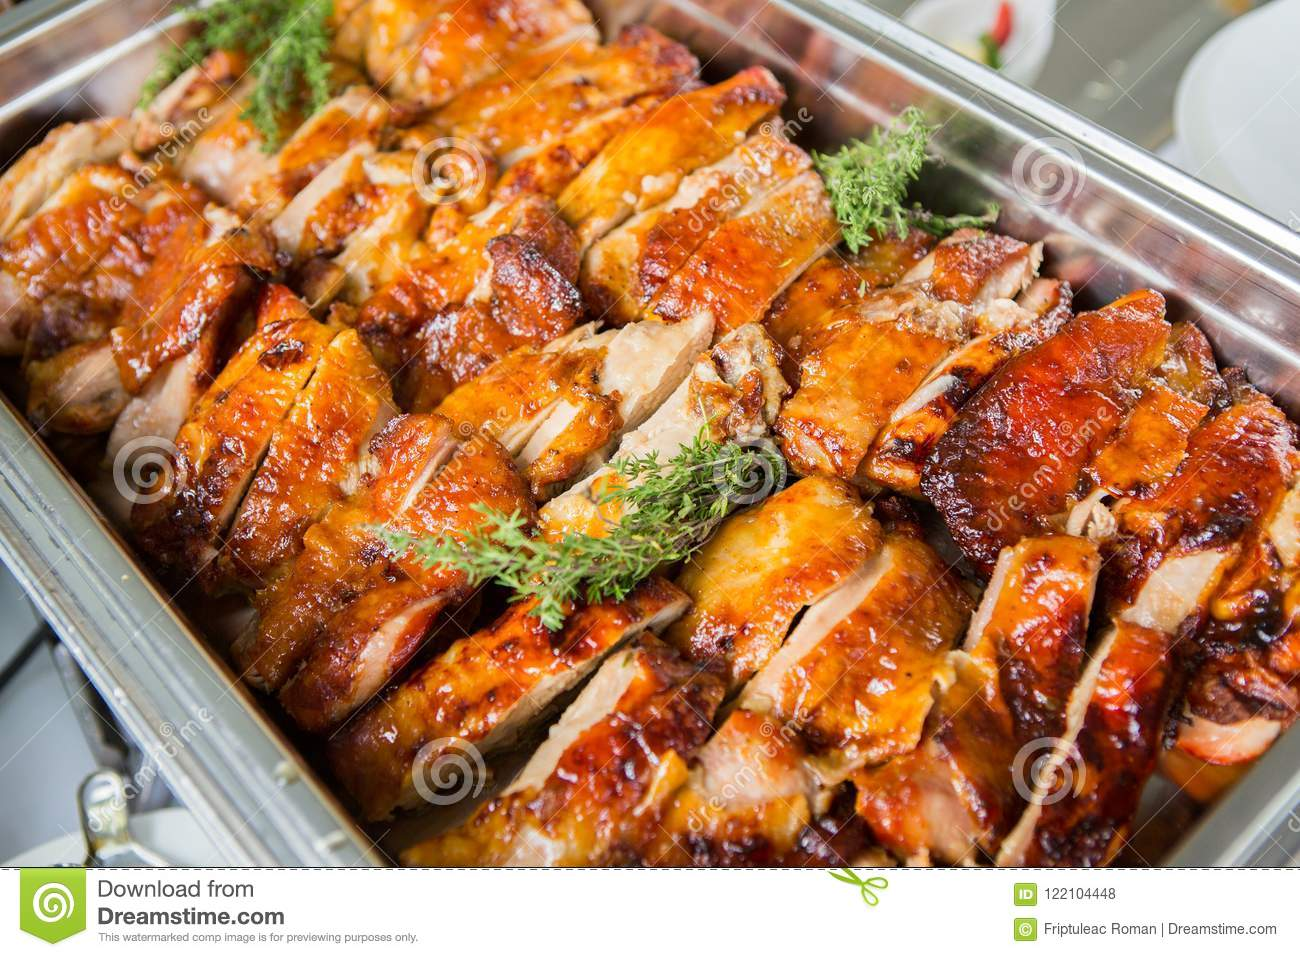 Catering Food Wedding Event Table. Buffet line in Wedding. Delicious appetizer close-up.